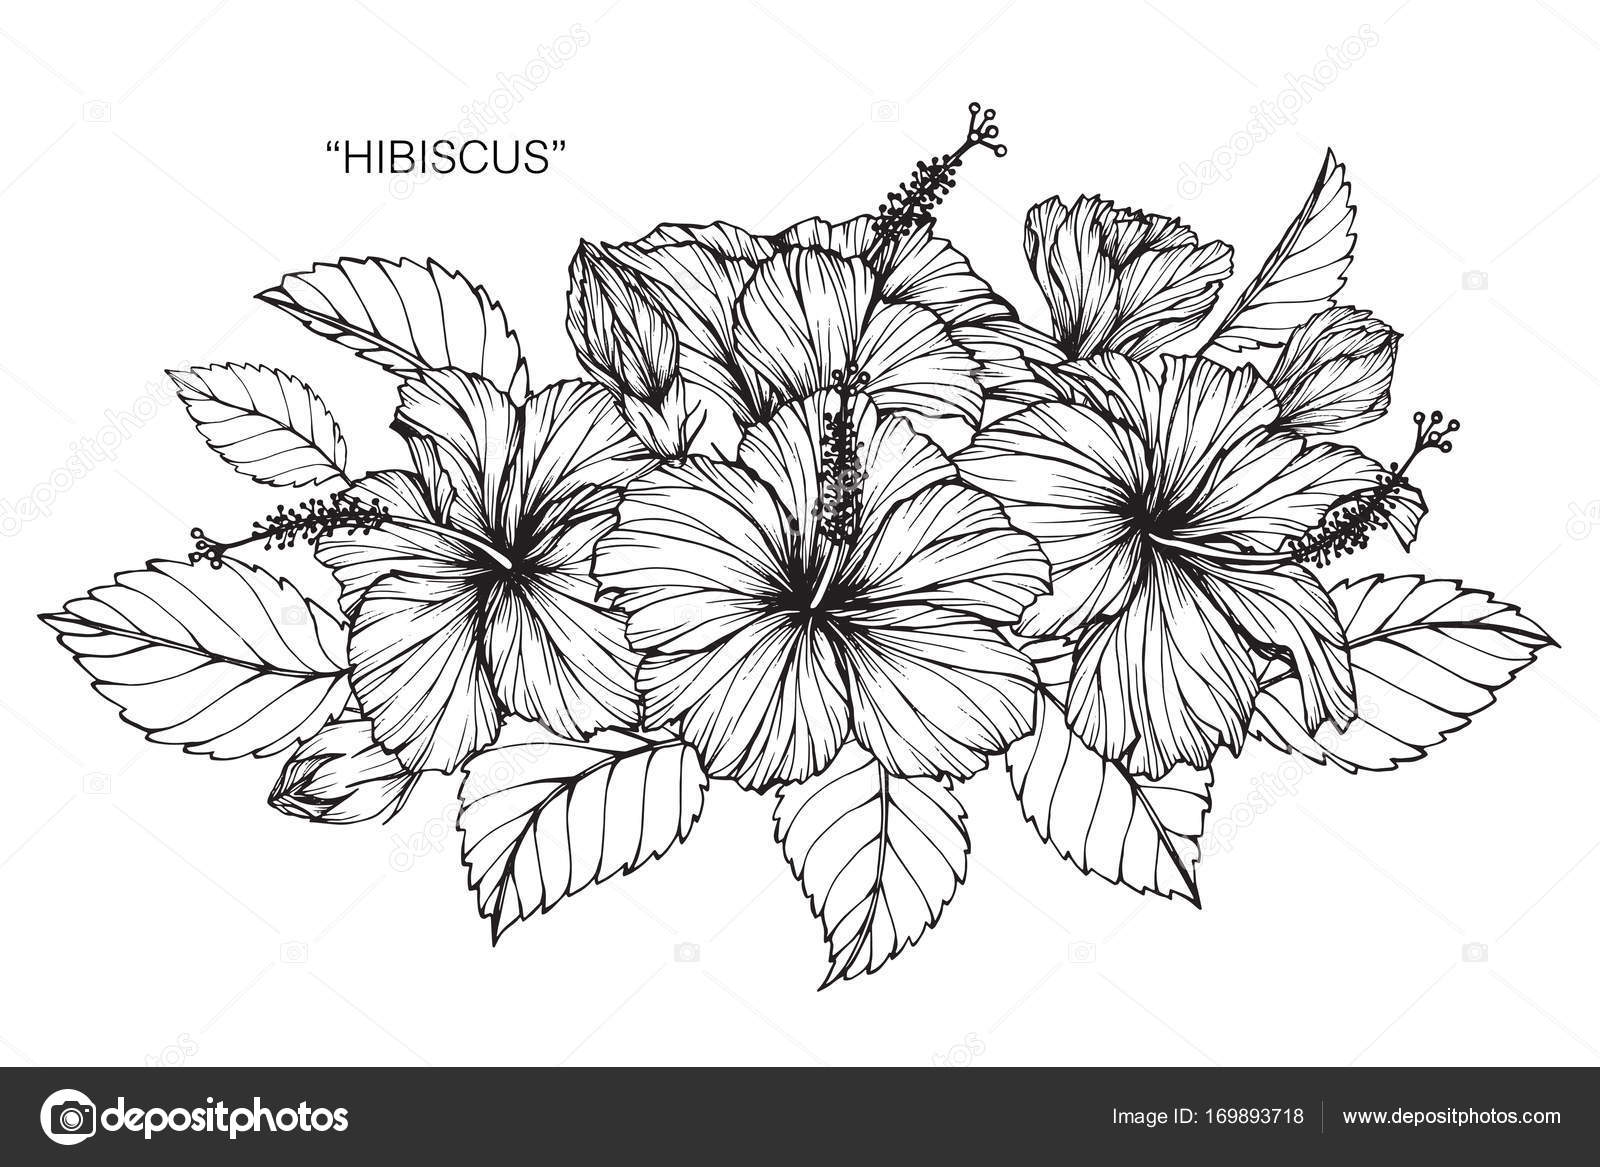 Hibiscus Flower Drawing Sketch Black White Line Art Stock Vector